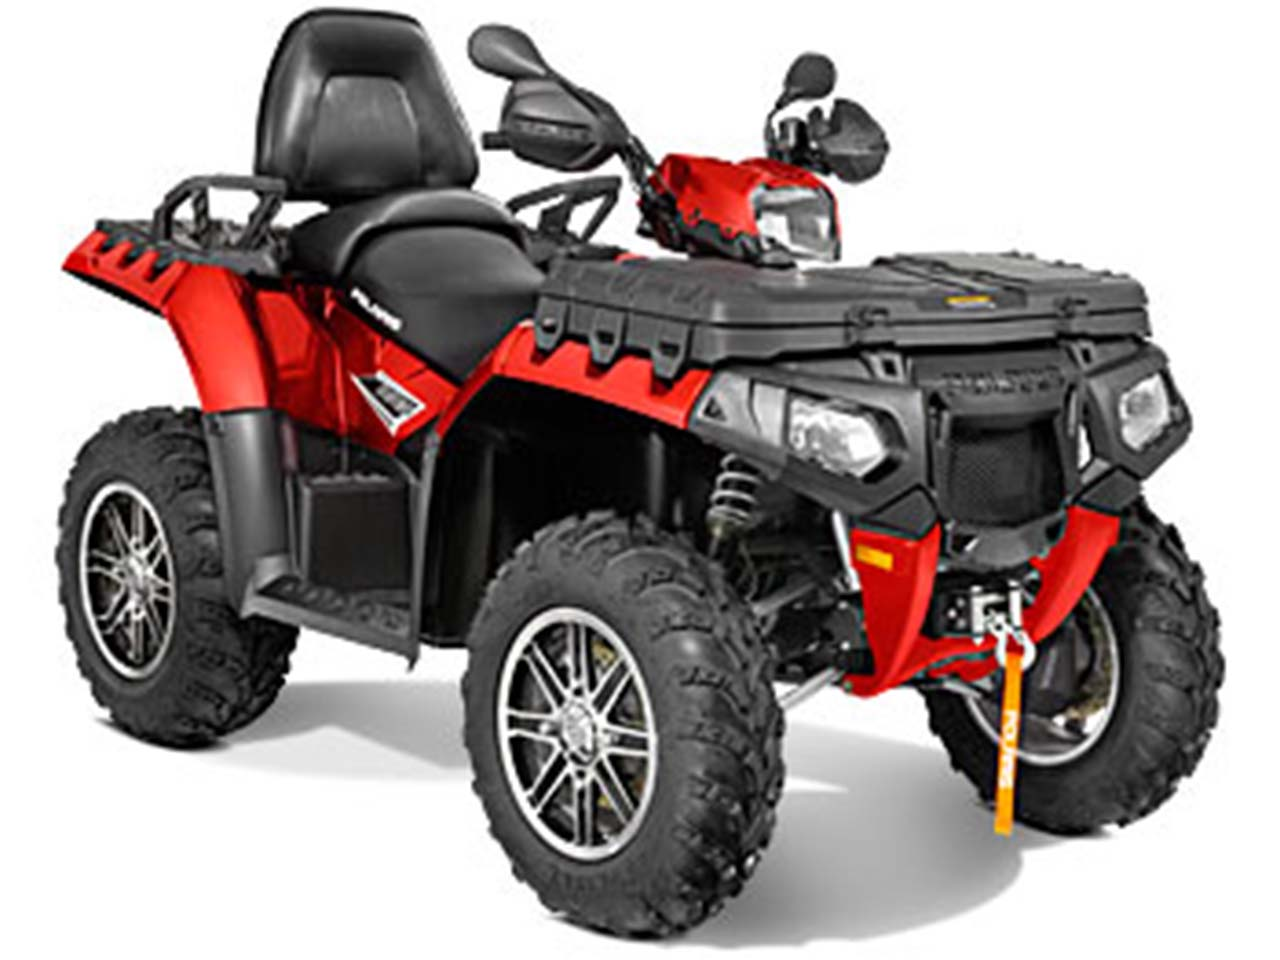 polaris dating site Polaris ace ® single-seat orv  site: us polaris off-road  polaris off-road vehicles can be hazardous to operate and are not intended for on-road use.